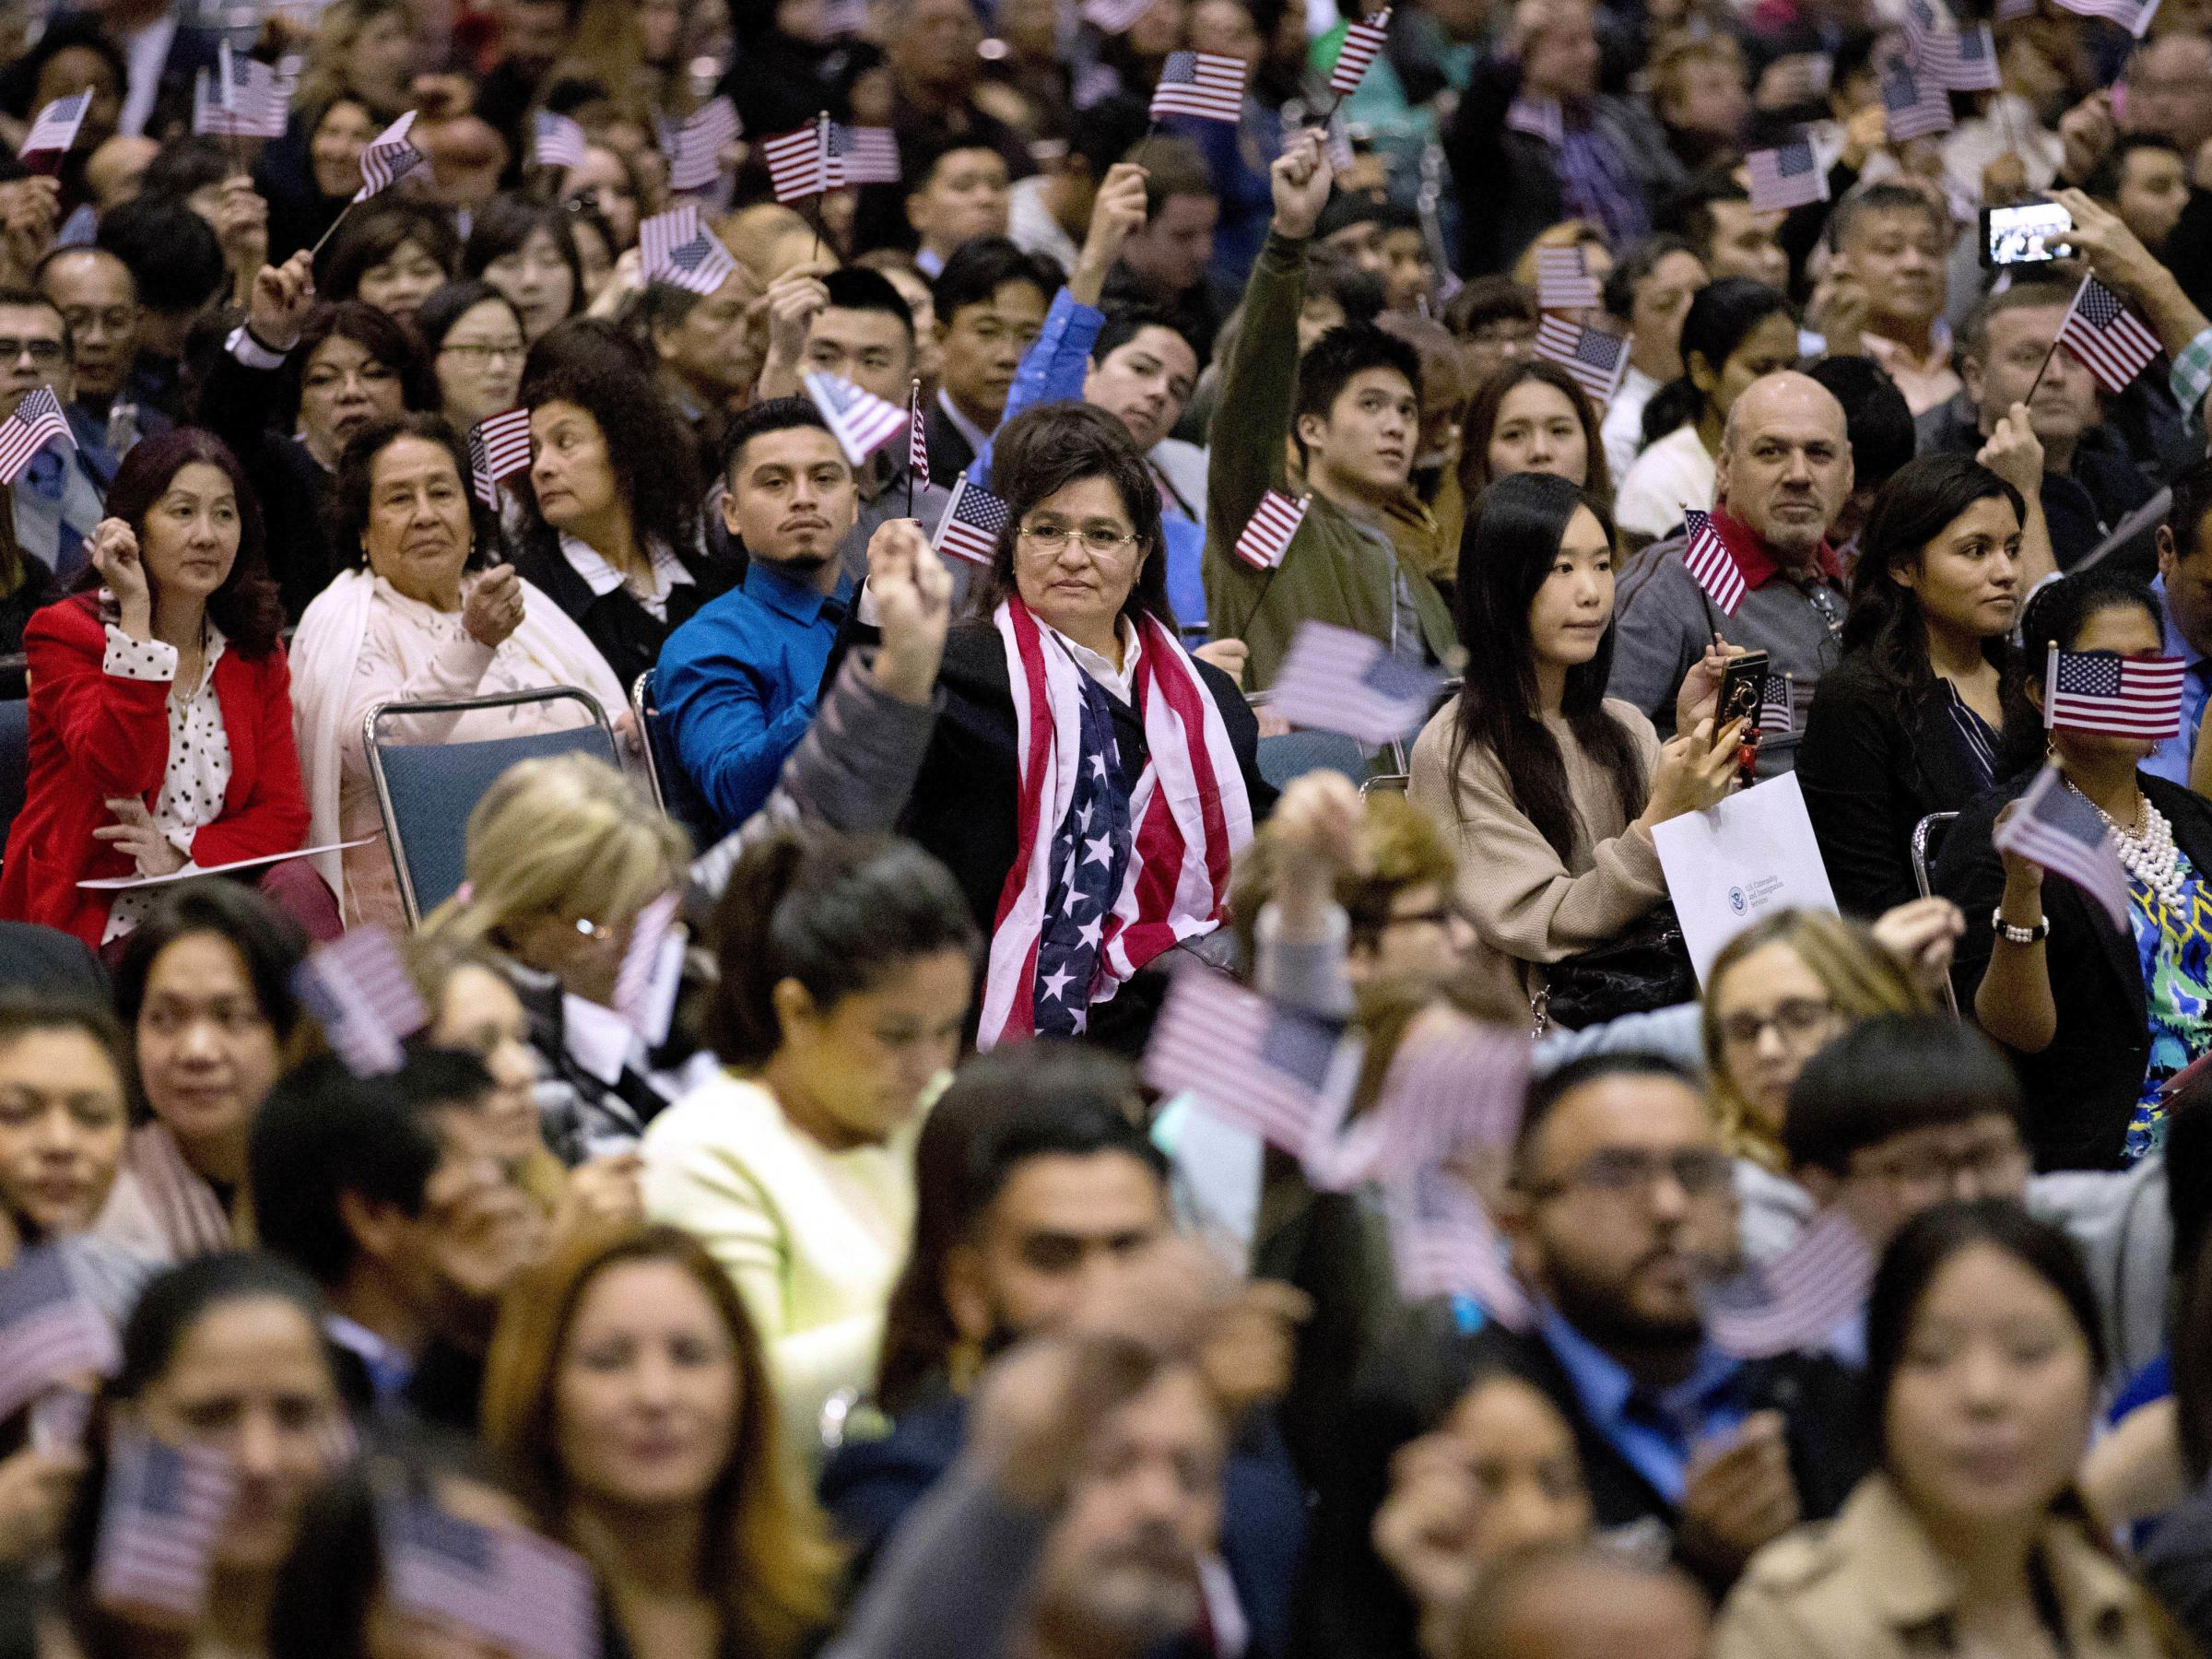 USCIS Pulls 'Nation Of Immigrants' From Mission Statement